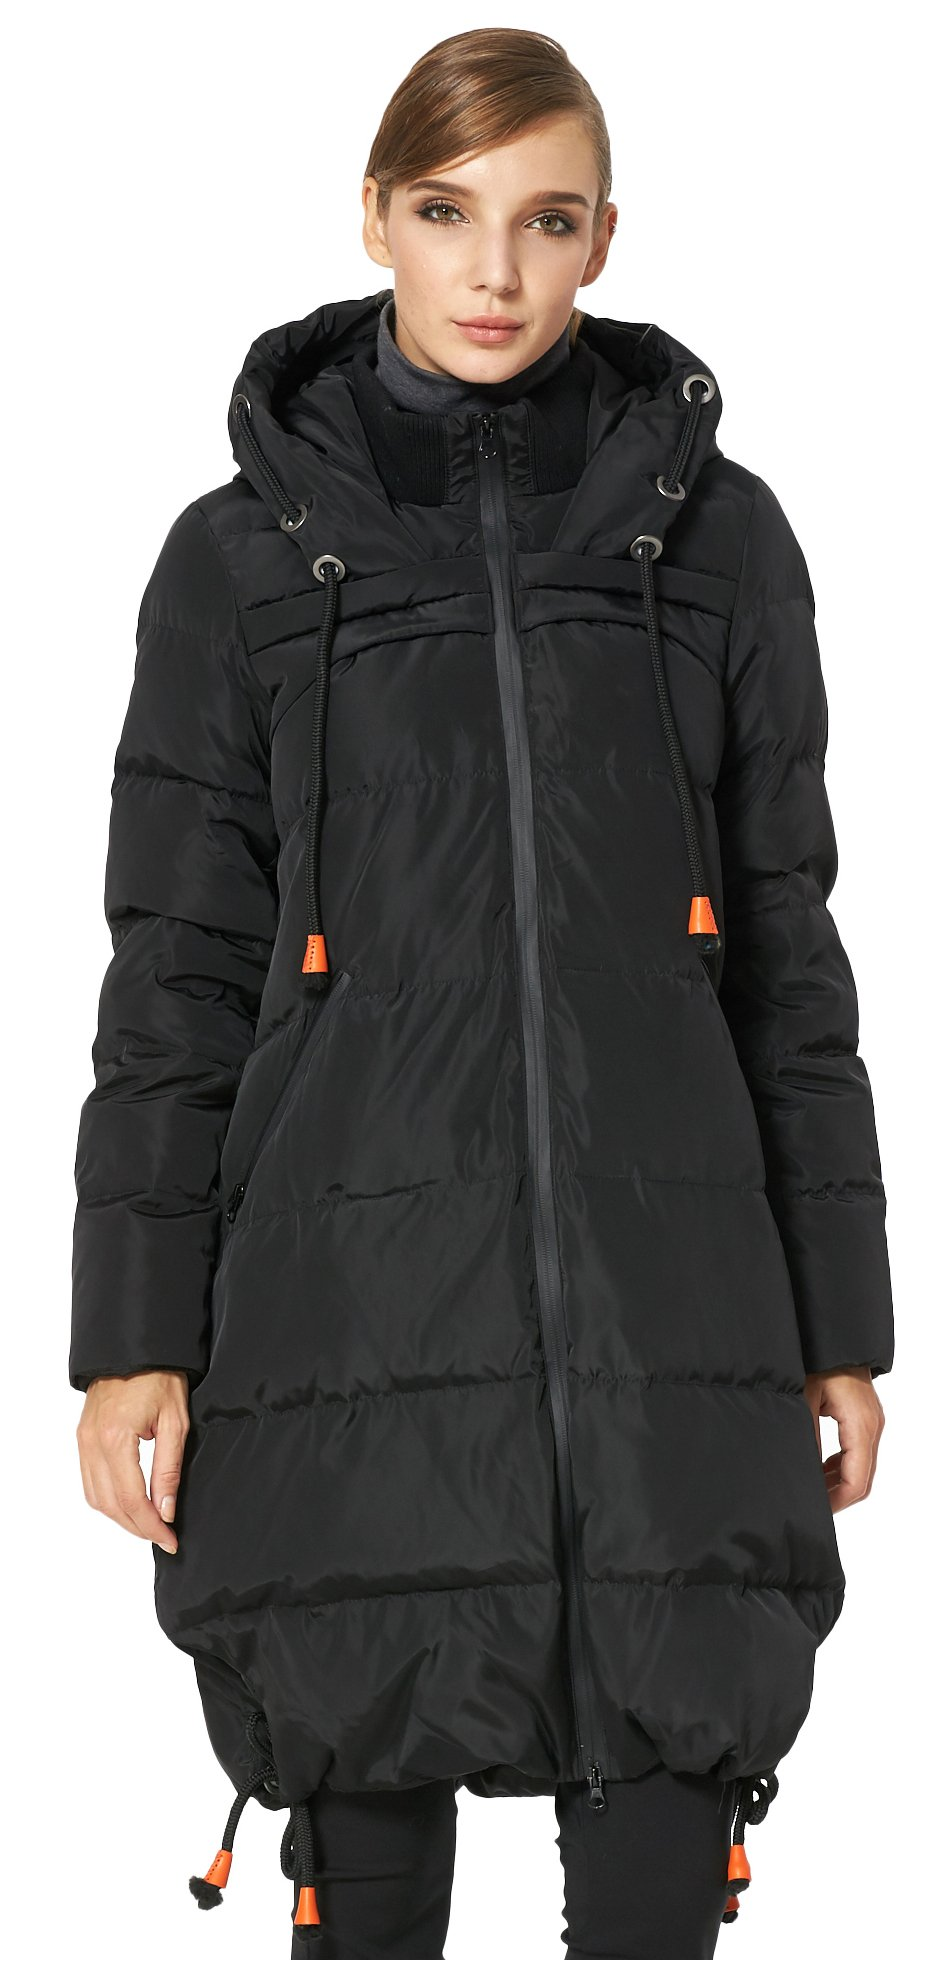 Orolay Women's Thickened Contrast Color Drawstring Down Jacket Hooded Black 2XL